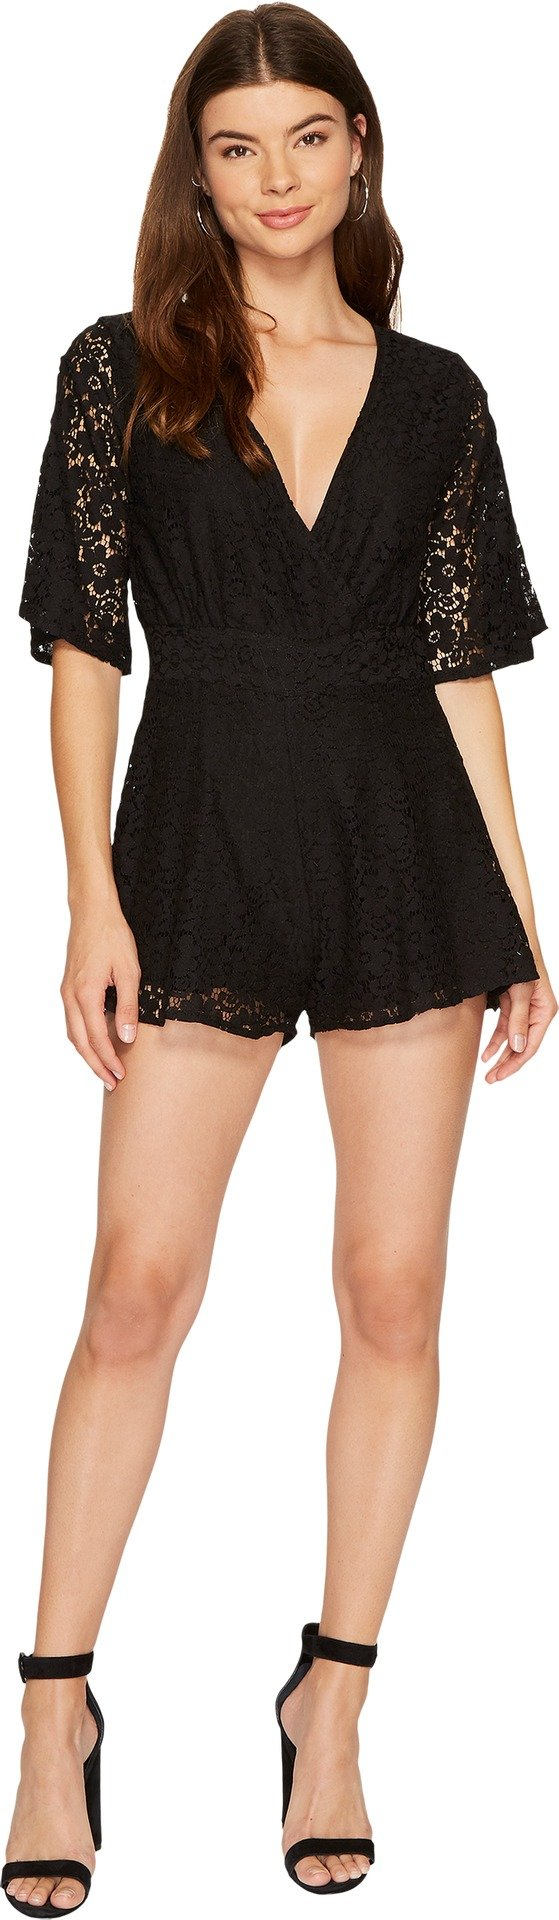 Lucy Love Women's Lace New You Romper Black Jumpsuit